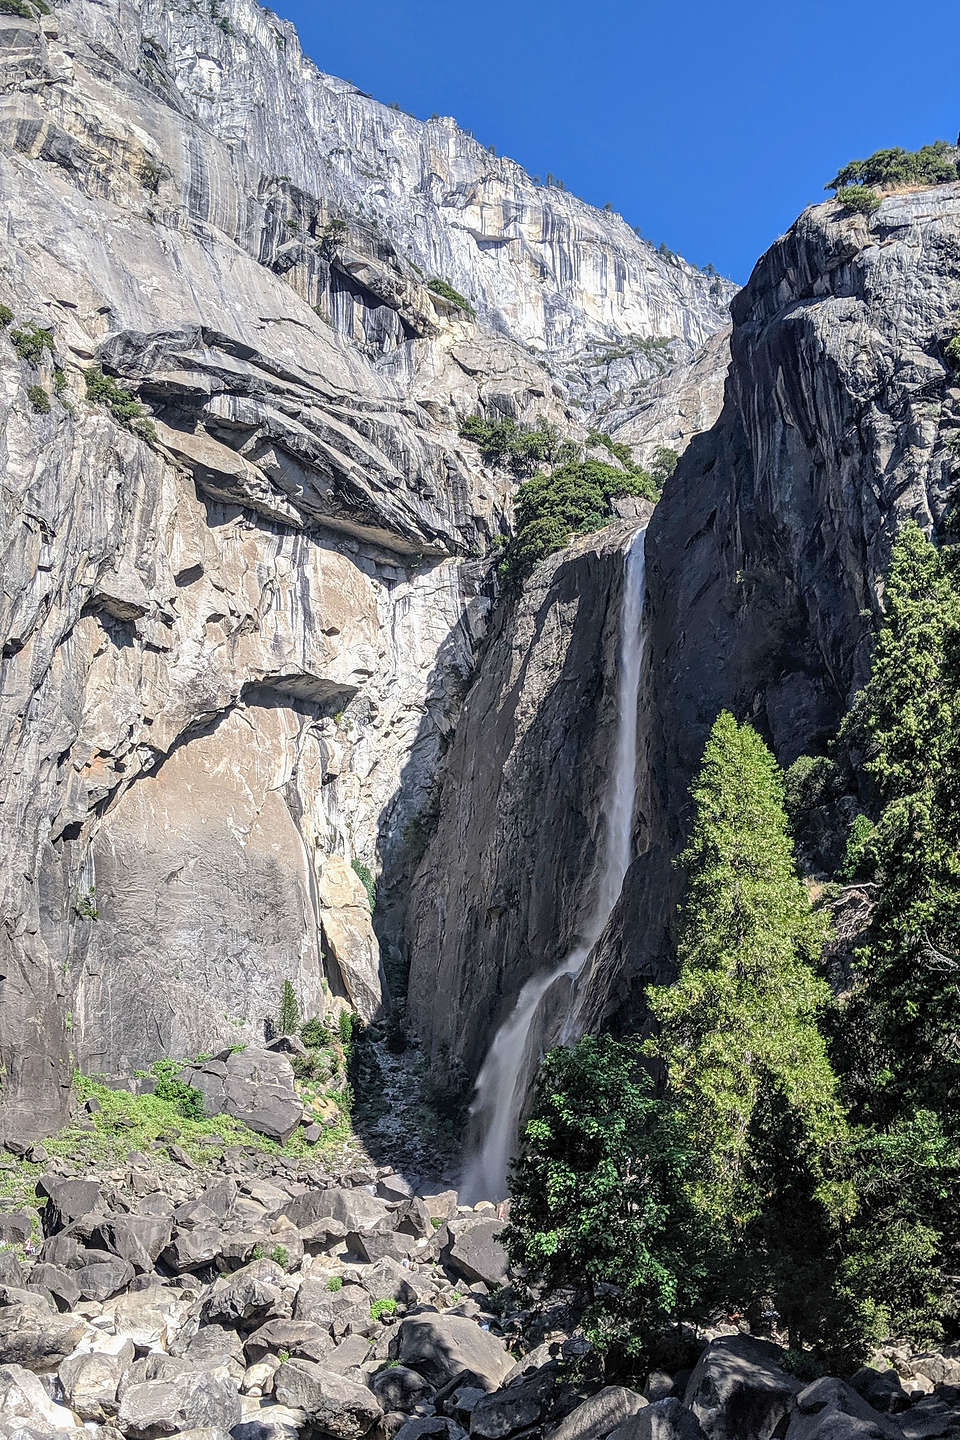 Yosemite Falls still going strong in August